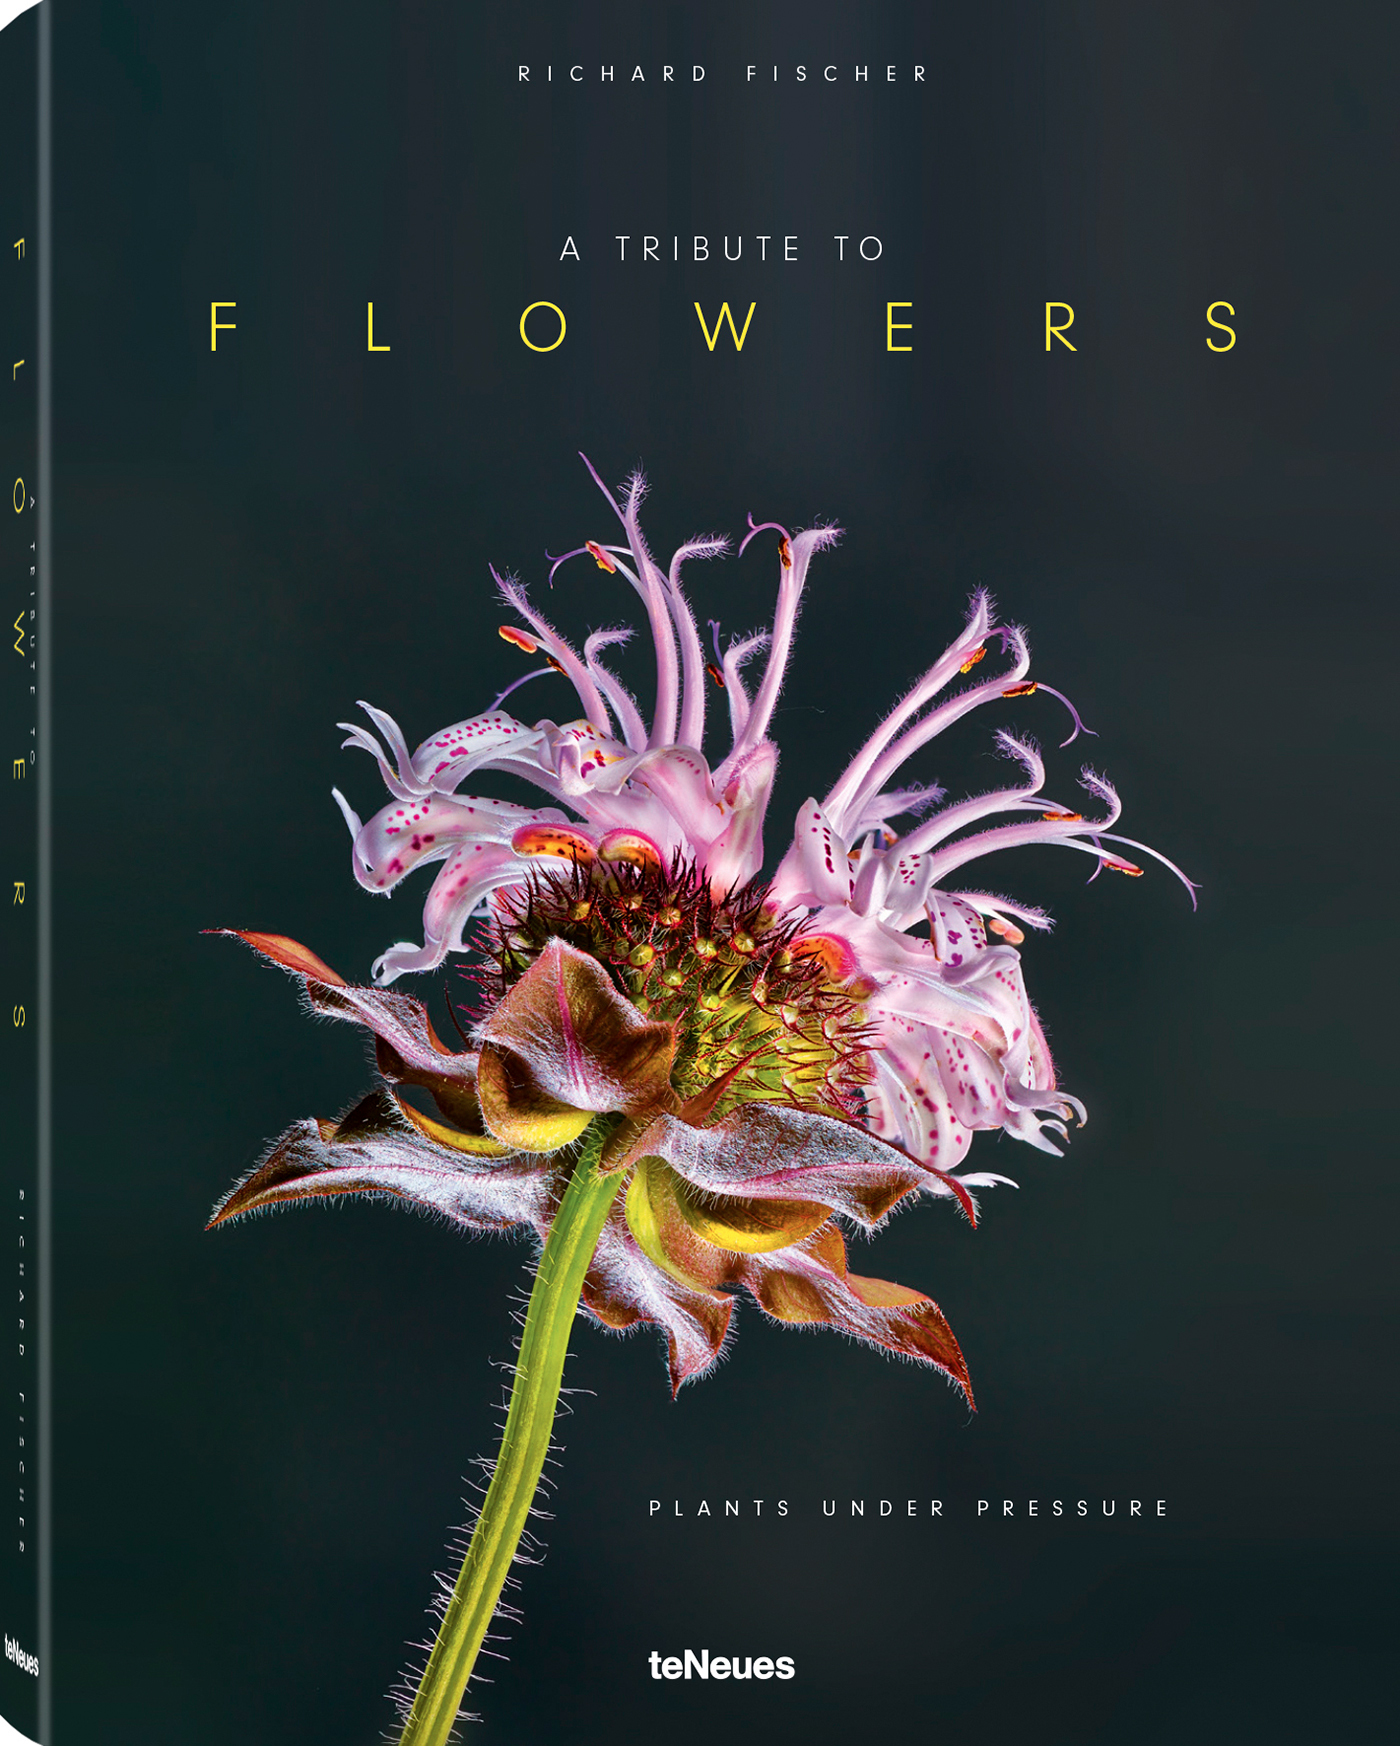 A TRIBUTE TO FLOWERS / PLANTS UNDER PRESSURE